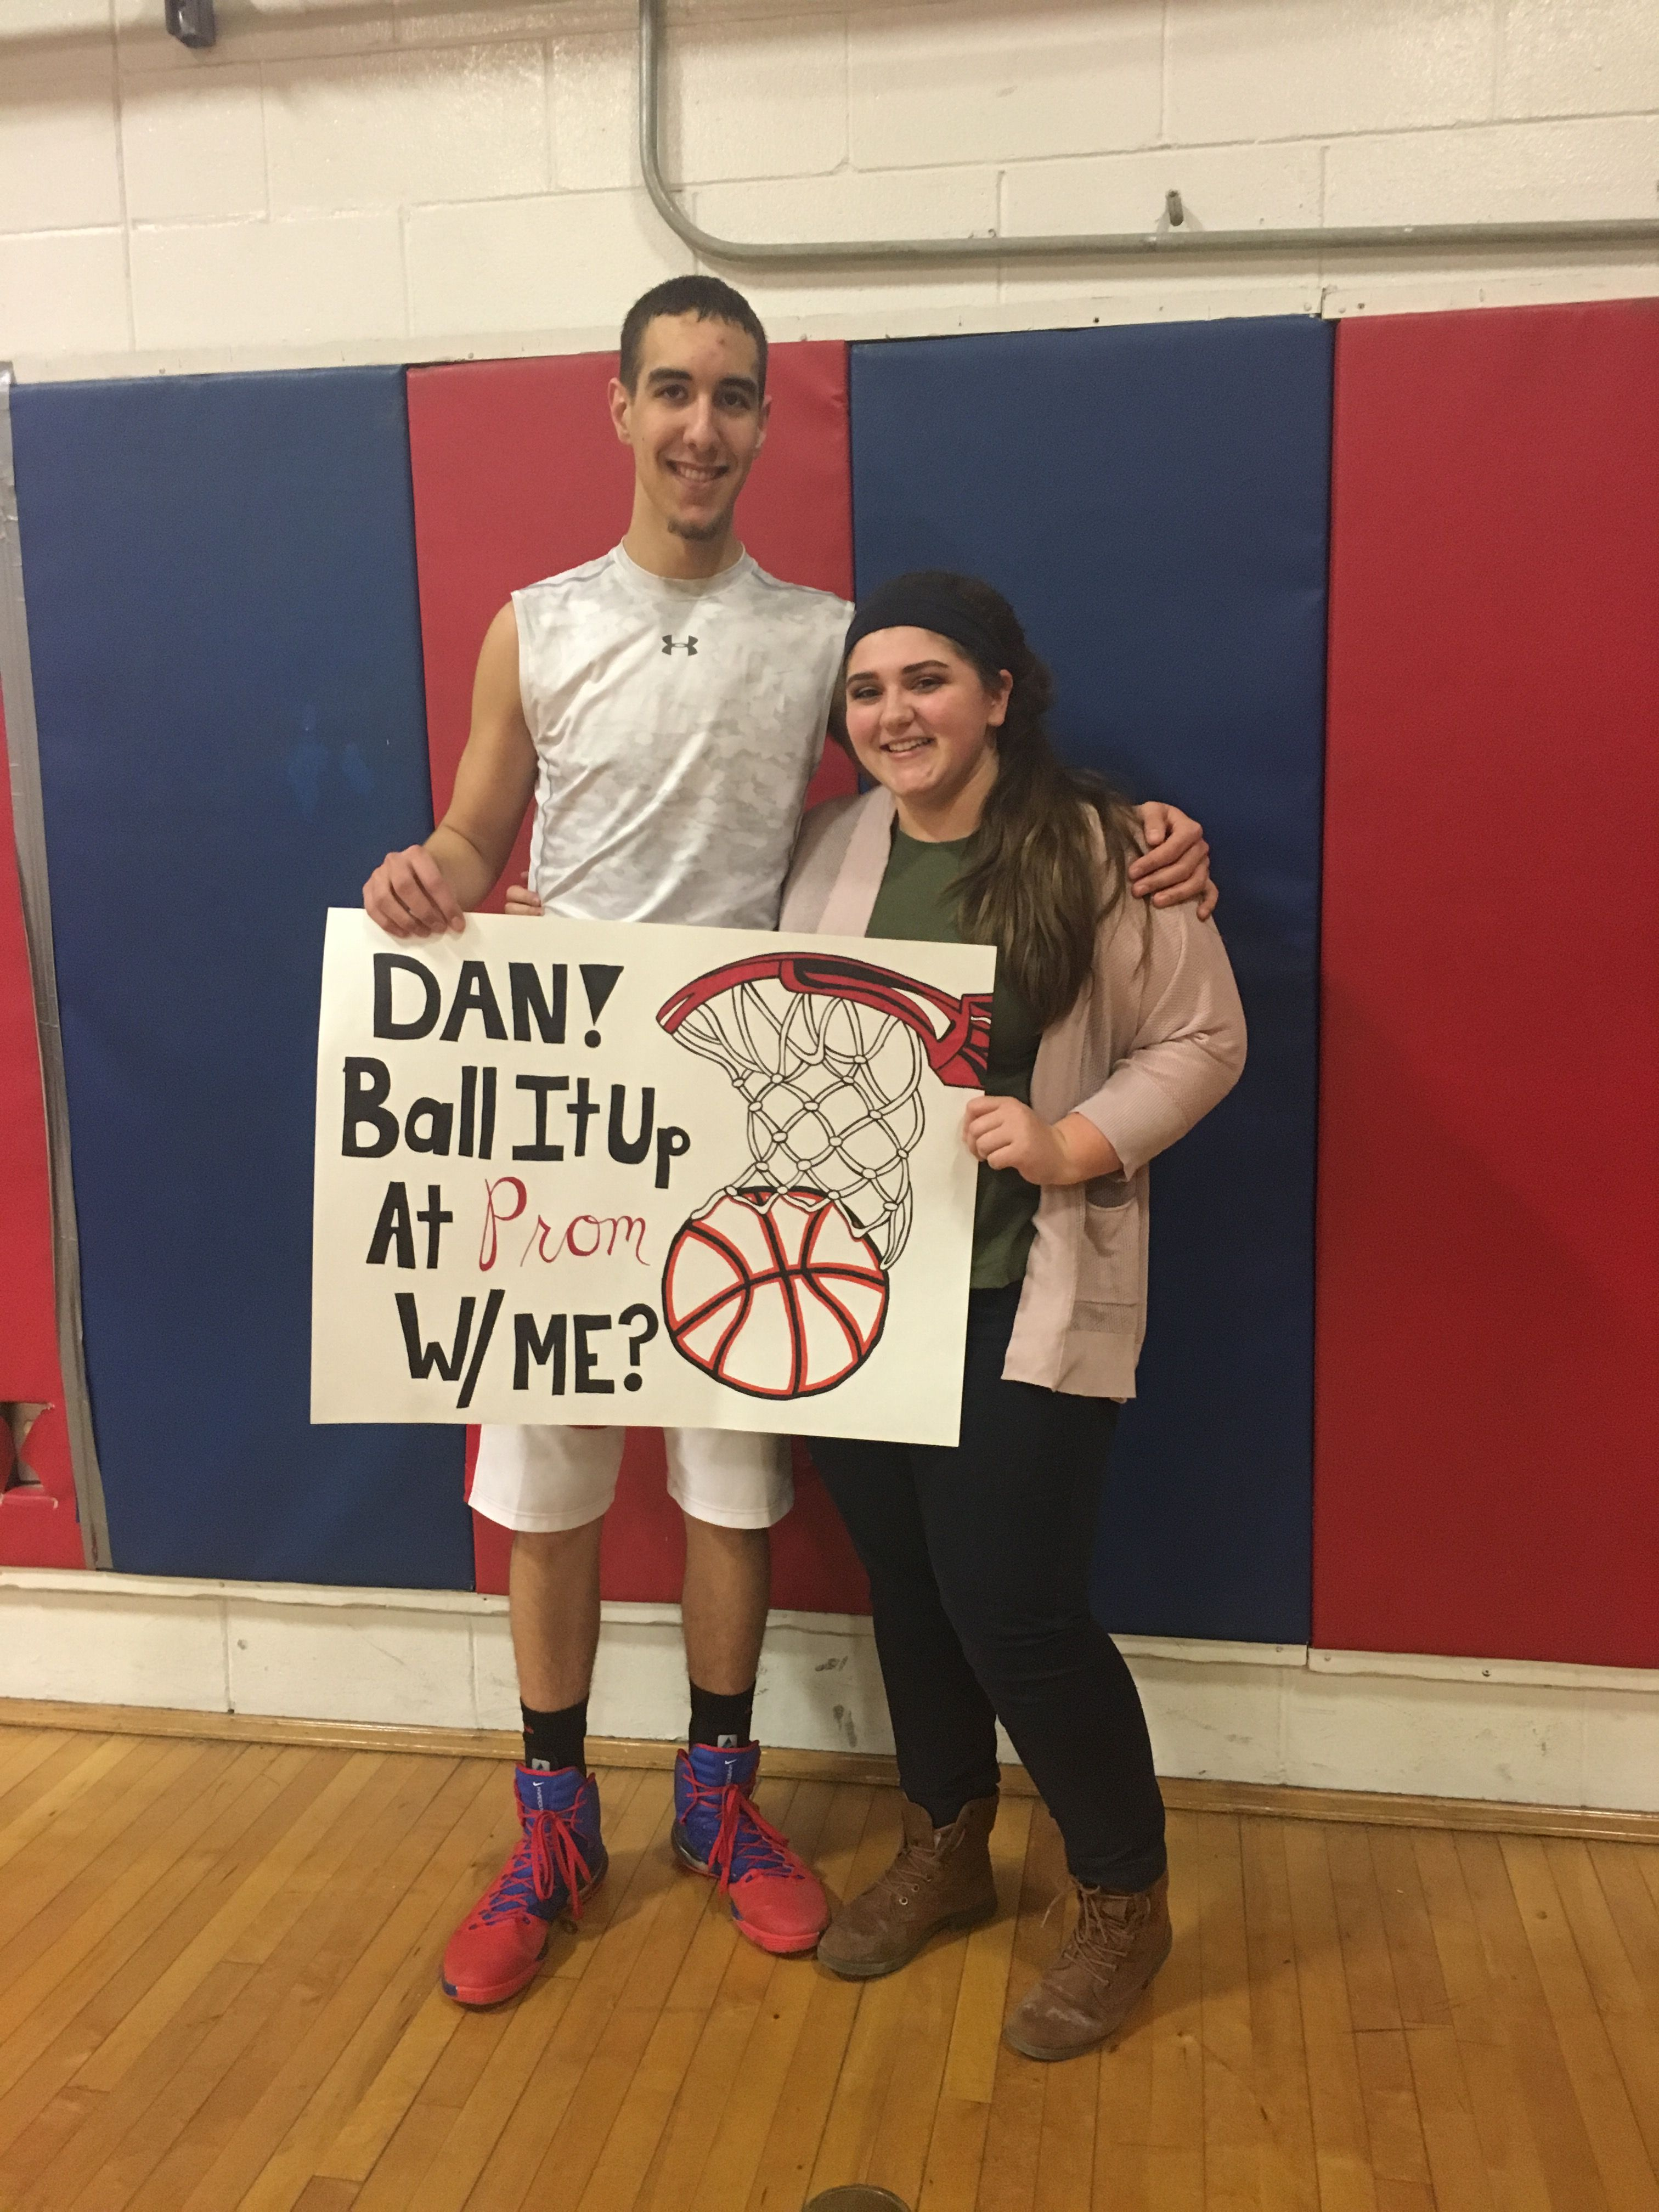 cute basketball promposal for guys prom pinterest promposal guy and prom. Black Bedroom Furniture Sets. Home Design Ideas